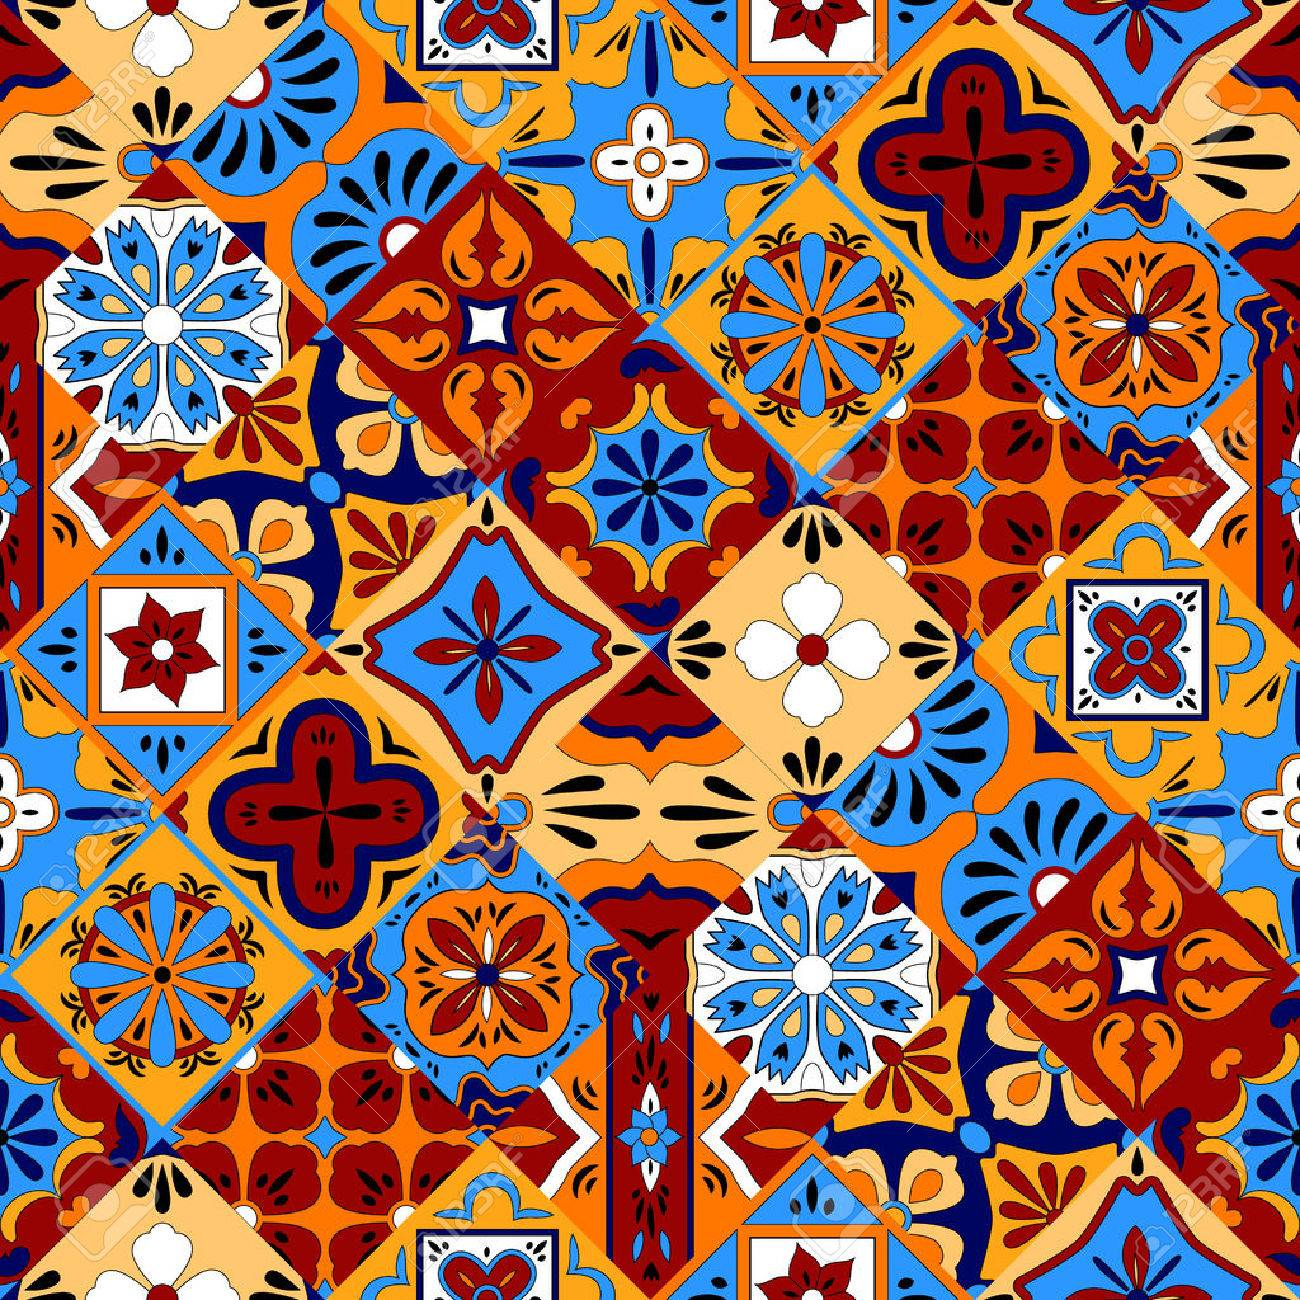 Mexican stylized talavera tiles seamless pattern in blue red and yellow, vector background - 47943773